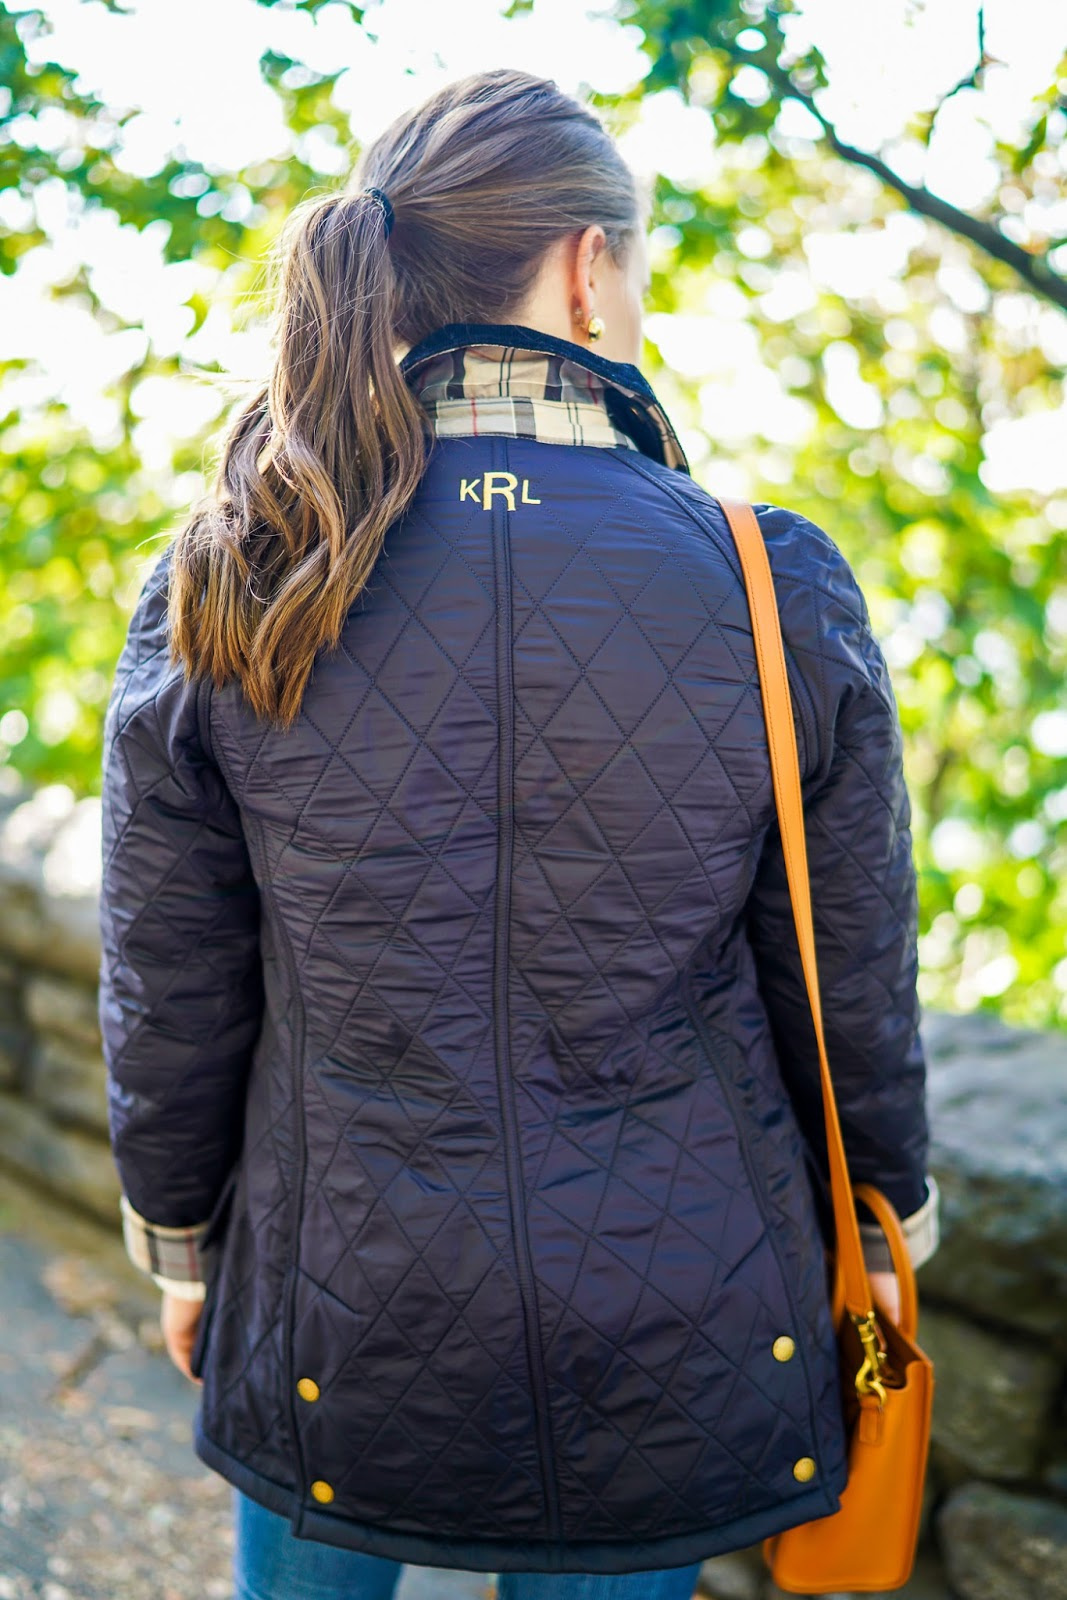 Barbour Quilted Jacket, monogrammed jackets